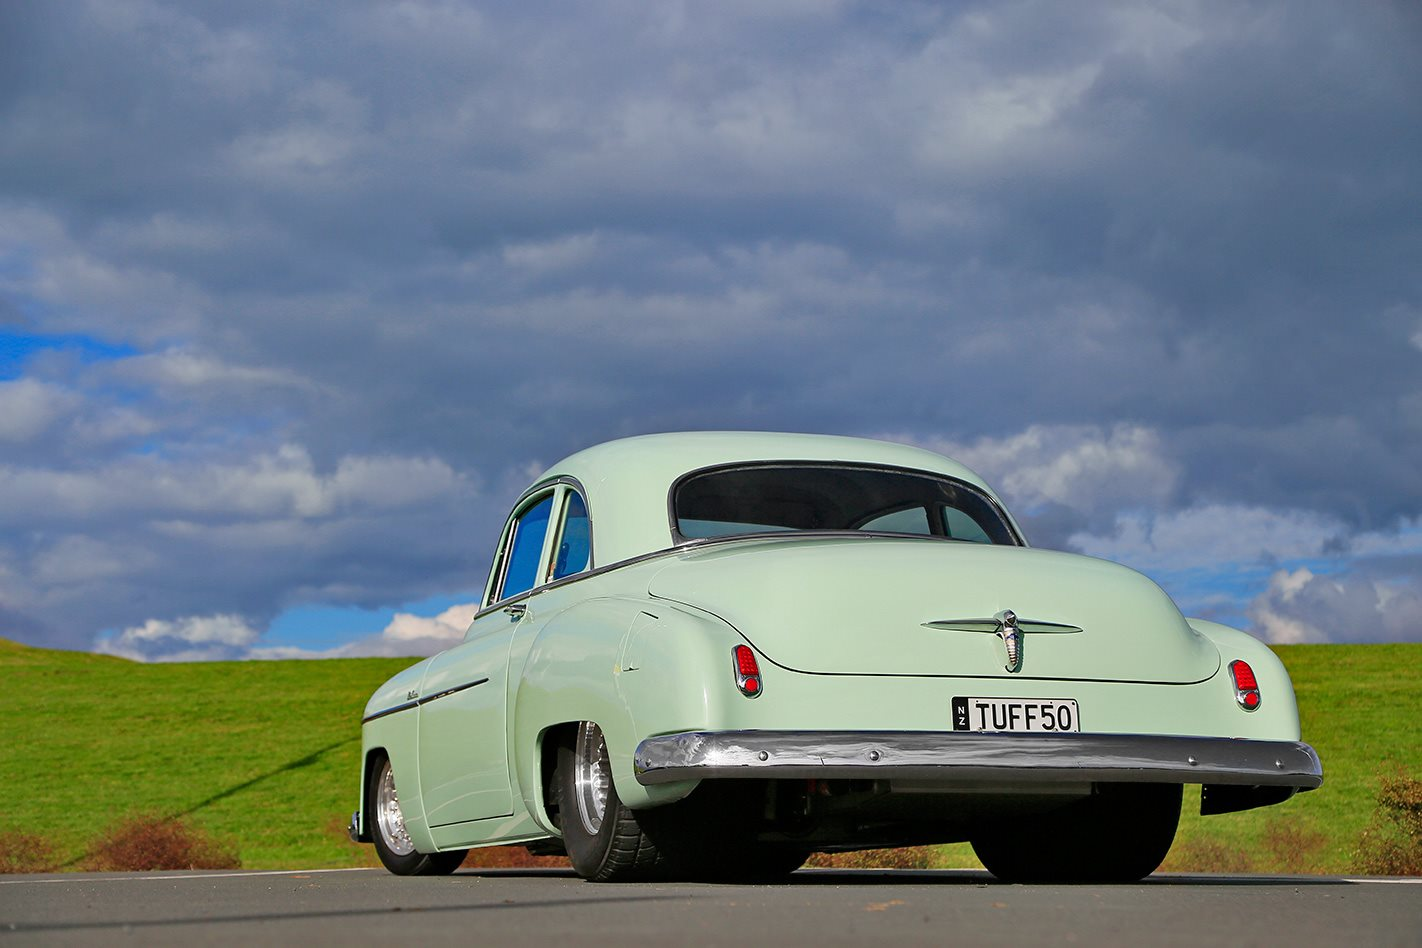 1950 V8 CHEV COUPE REAR